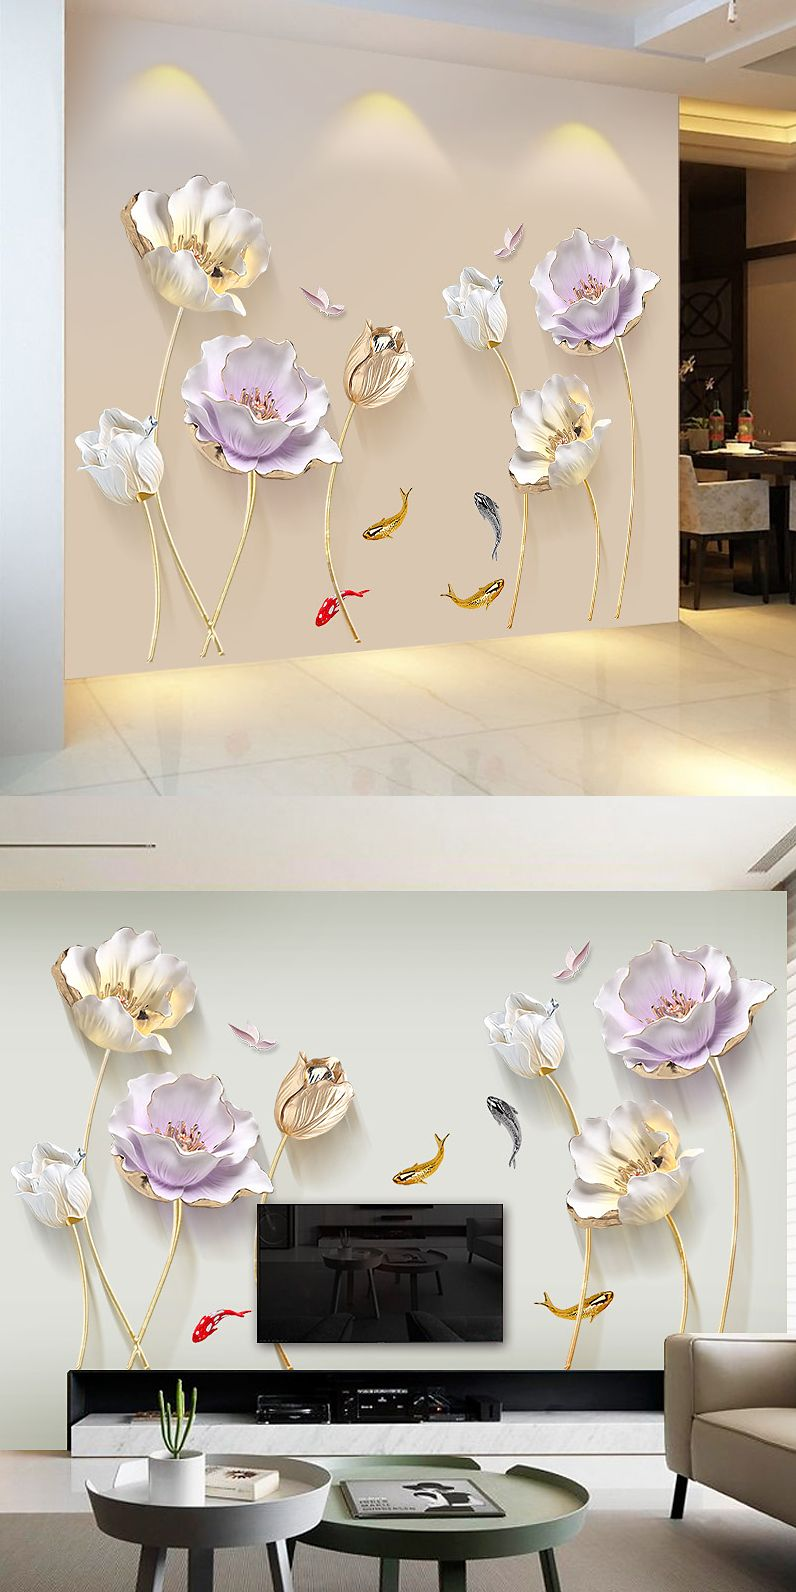 ff4fb31c576 Chinese style flower 3d wallpaper wall stickers. Looking for aliexpress best  deals and top sellers